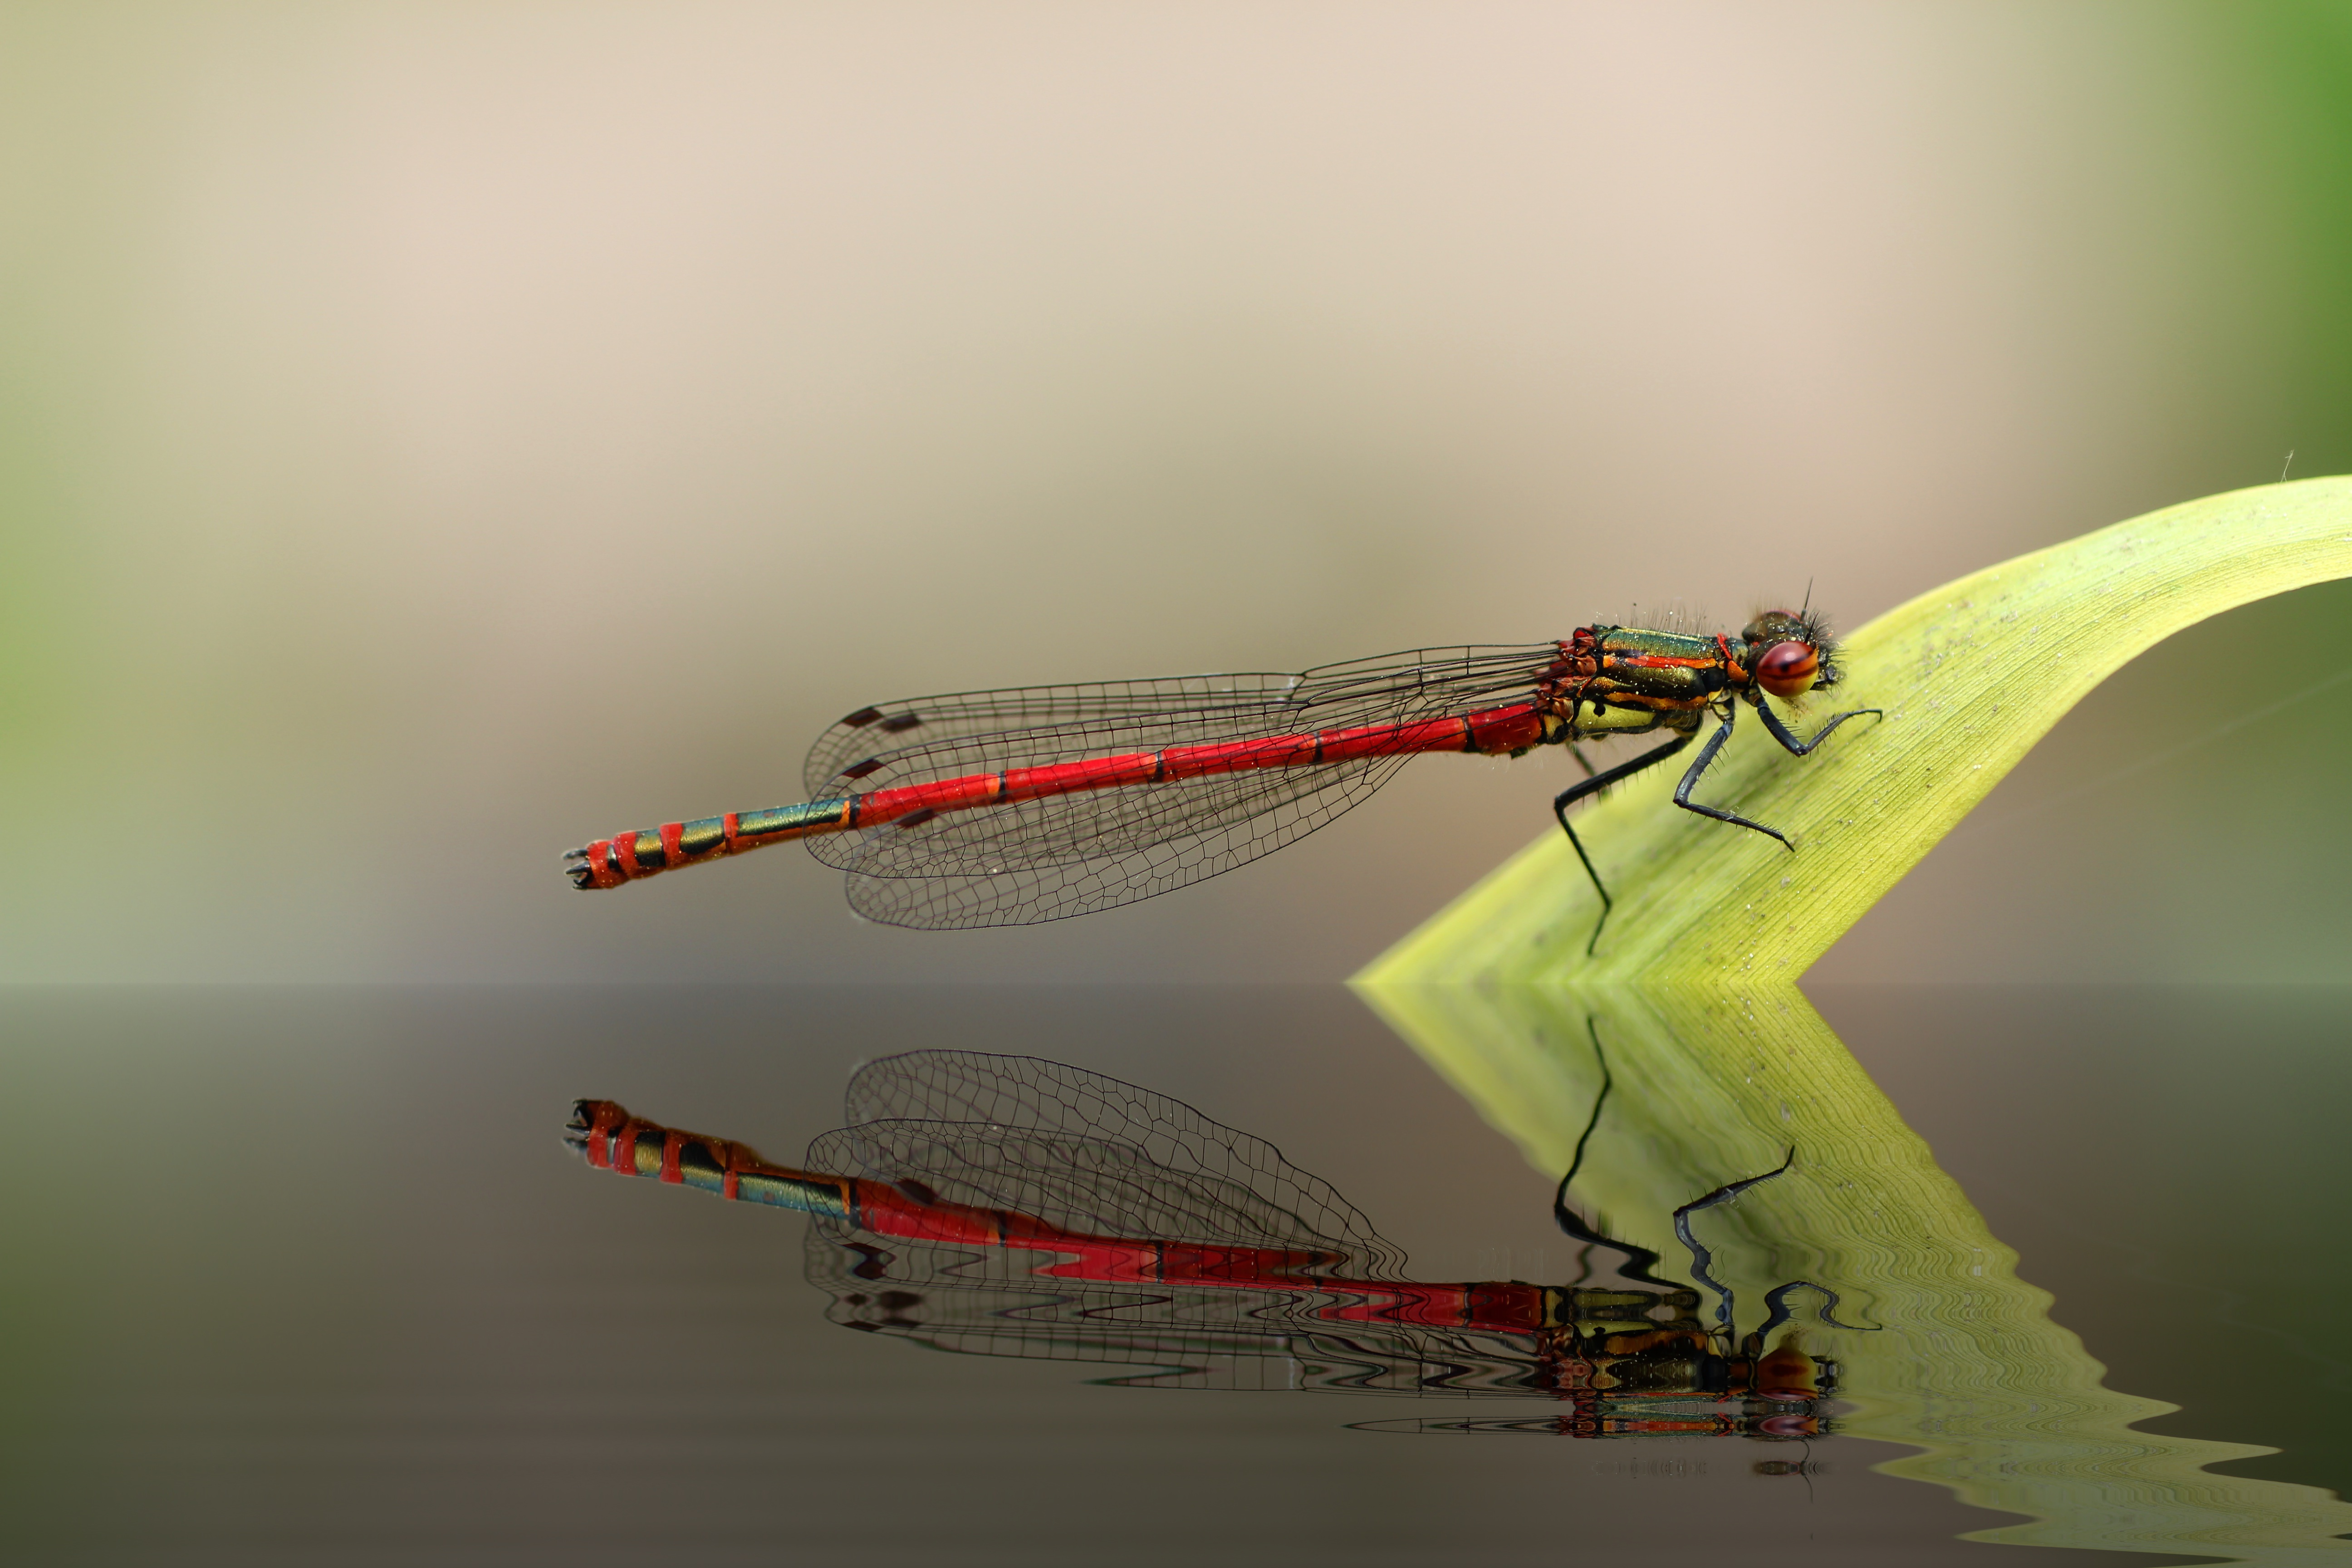 dragonfly, adonis dragonfly, insect